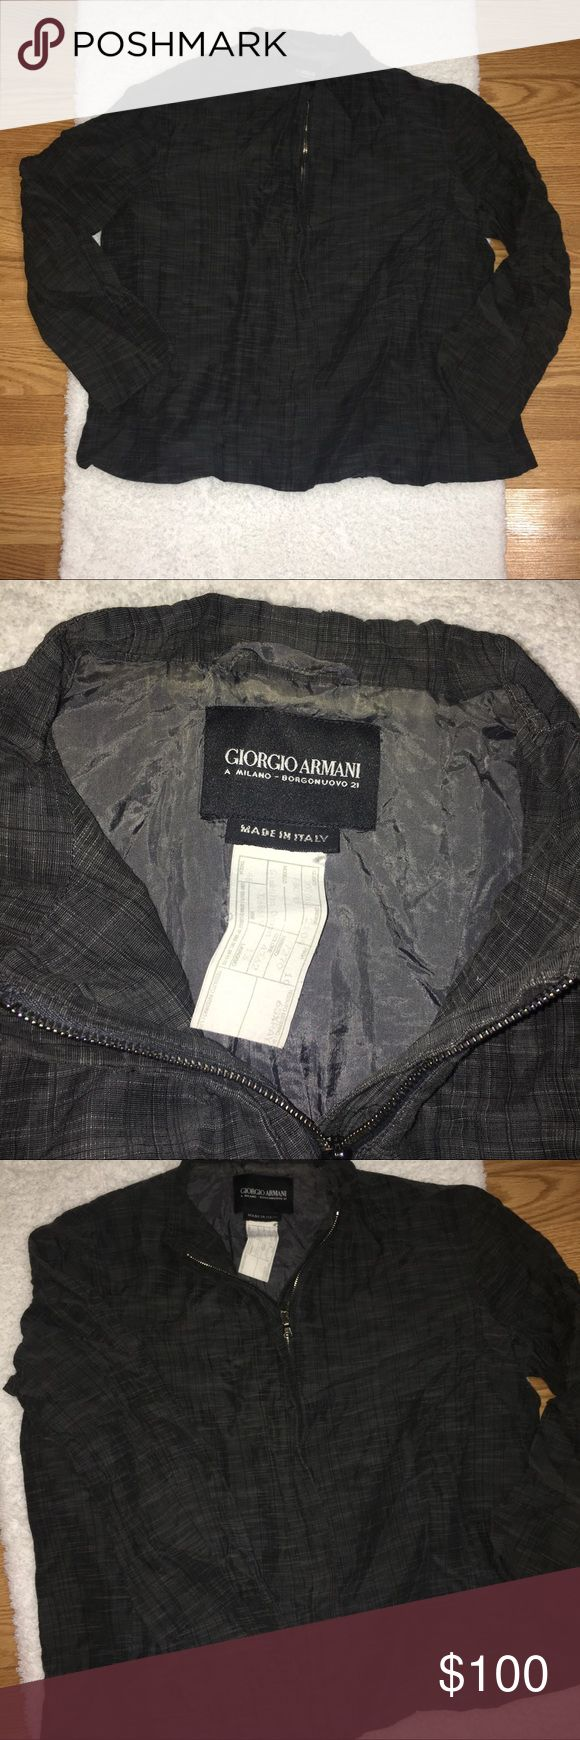 Giorgio Armani Jacket A Milano - Borgonuovo 21 Made in Italy Size M, 23' from armpit to armpit 65% rayon 35% cotton zip up jacket with faux pockets, grey color from smoke free home Giorgio Armani Jackets & Coats